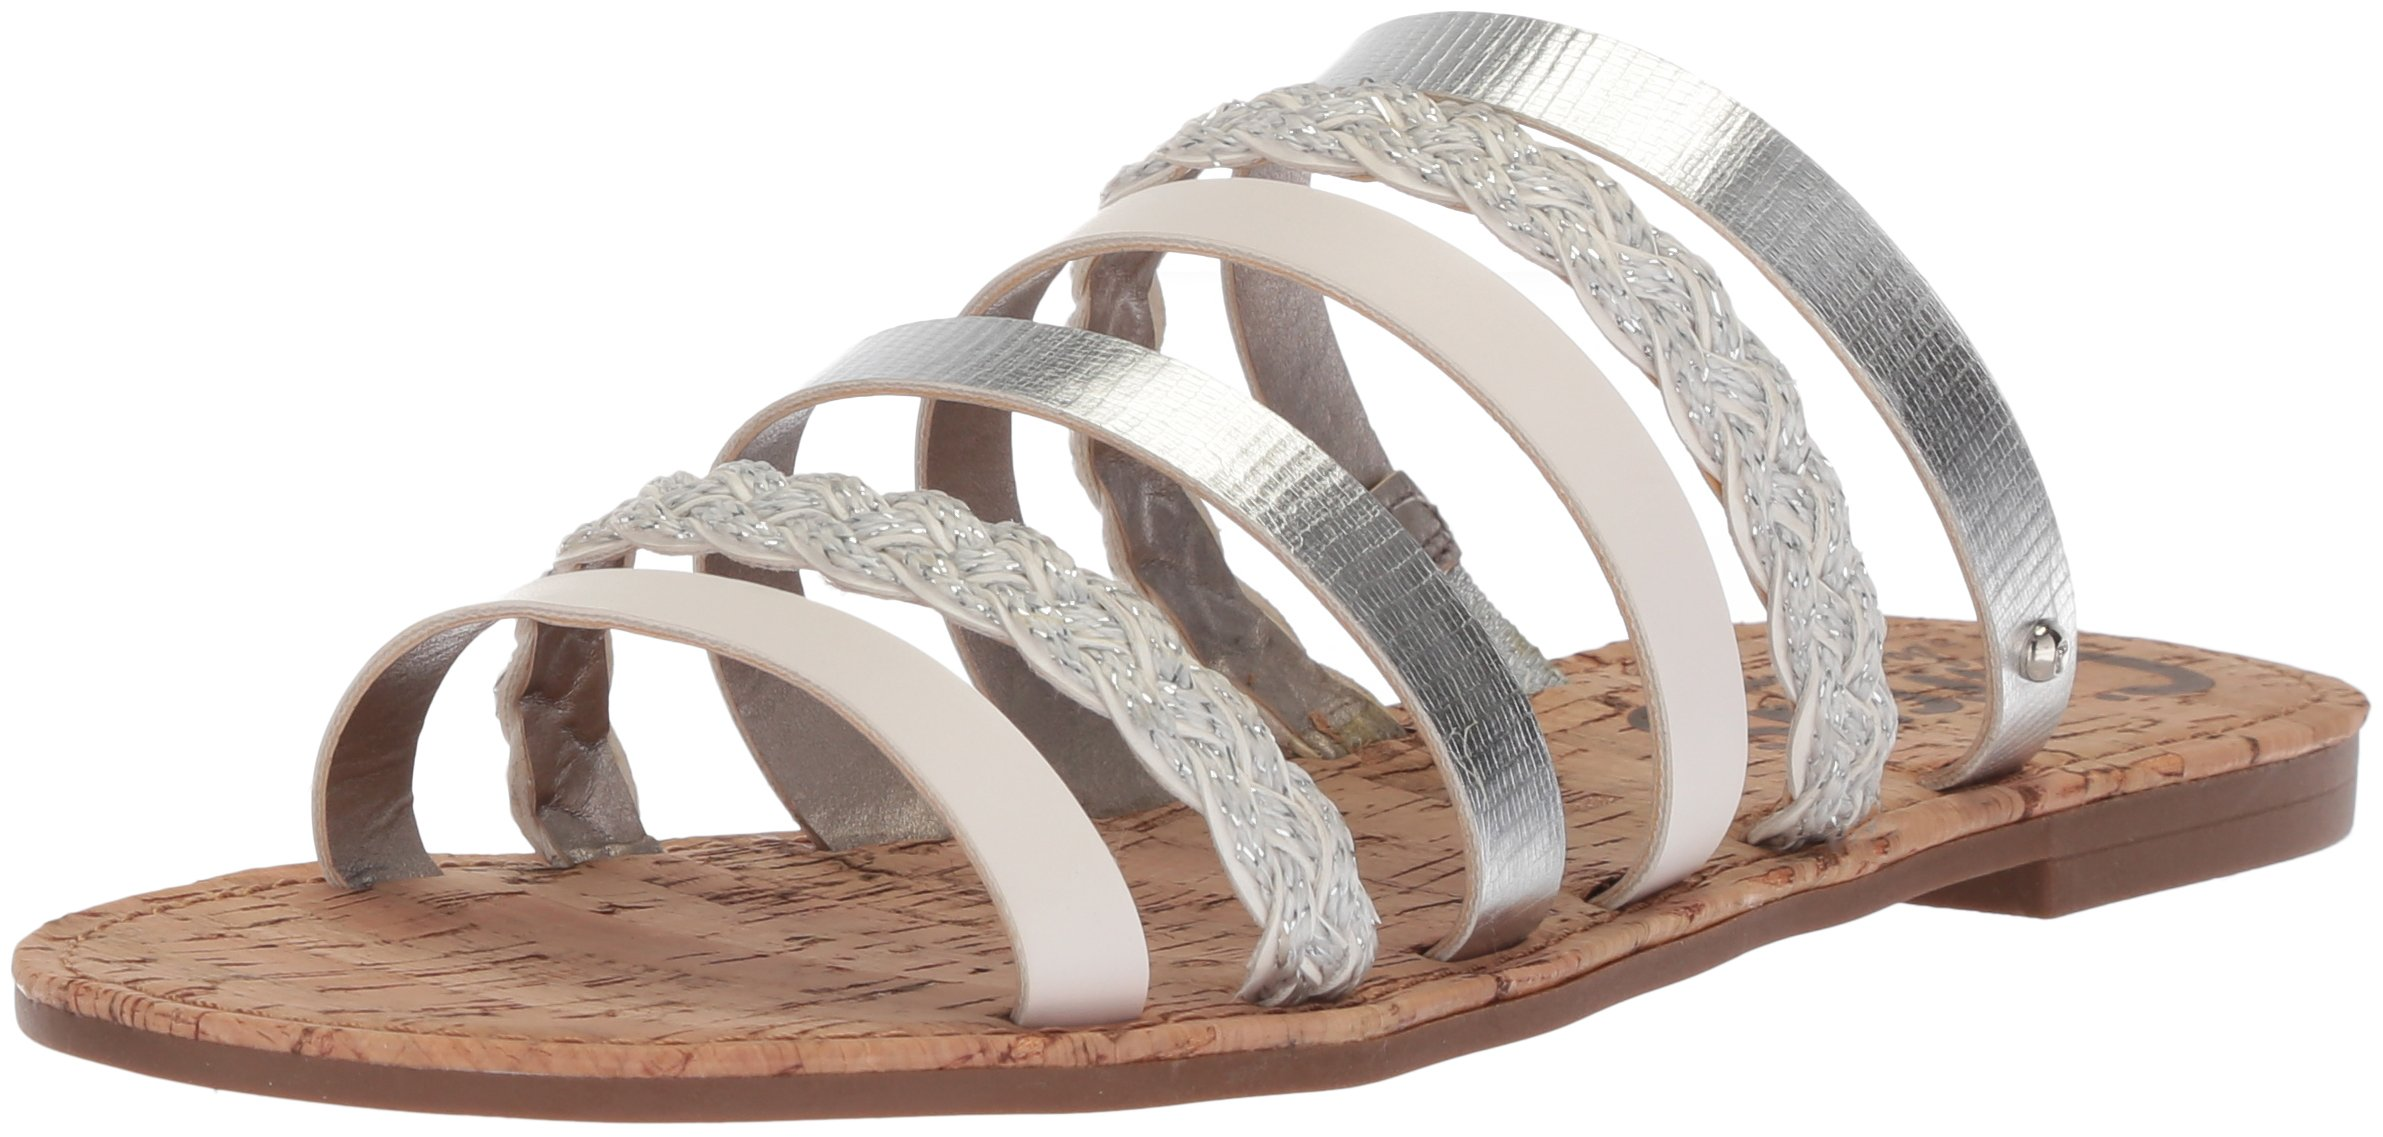 Circus by Sam Edelman Women's Braiden Slide Sandal, Soft Silver/Bright White, 7 M US